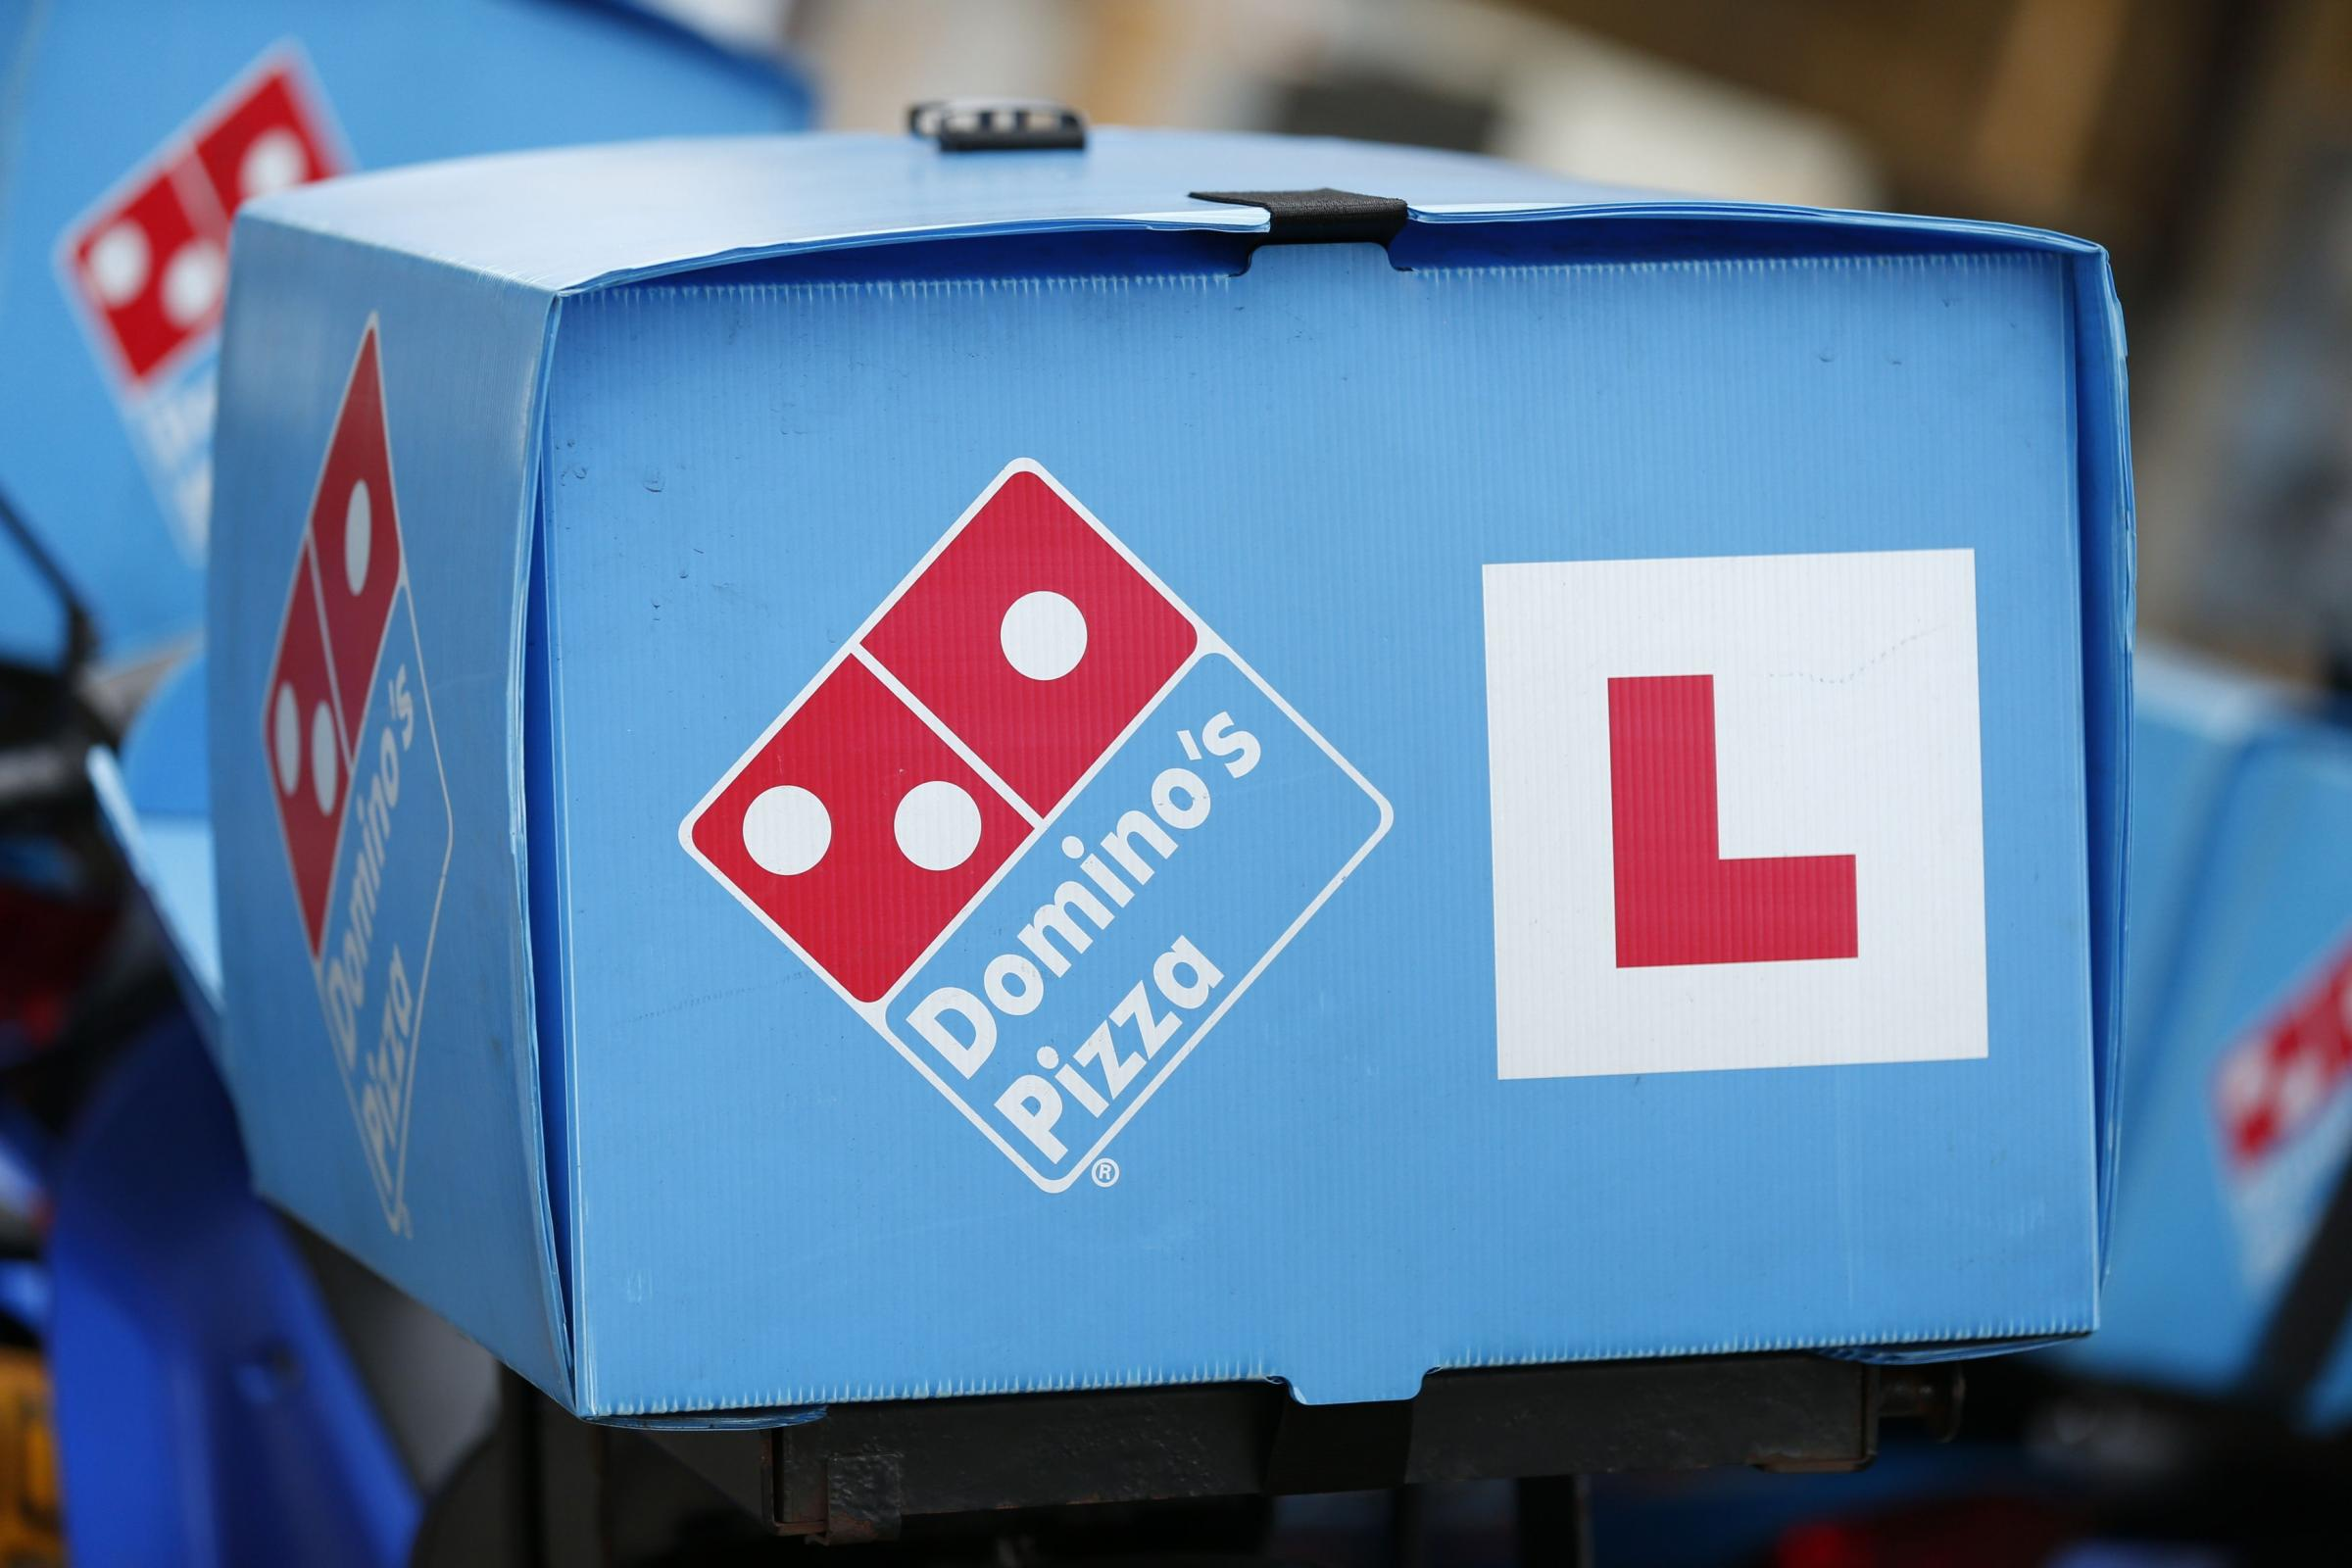 Plans To Allow Dominos Pizza To Use Part Of The Balaka